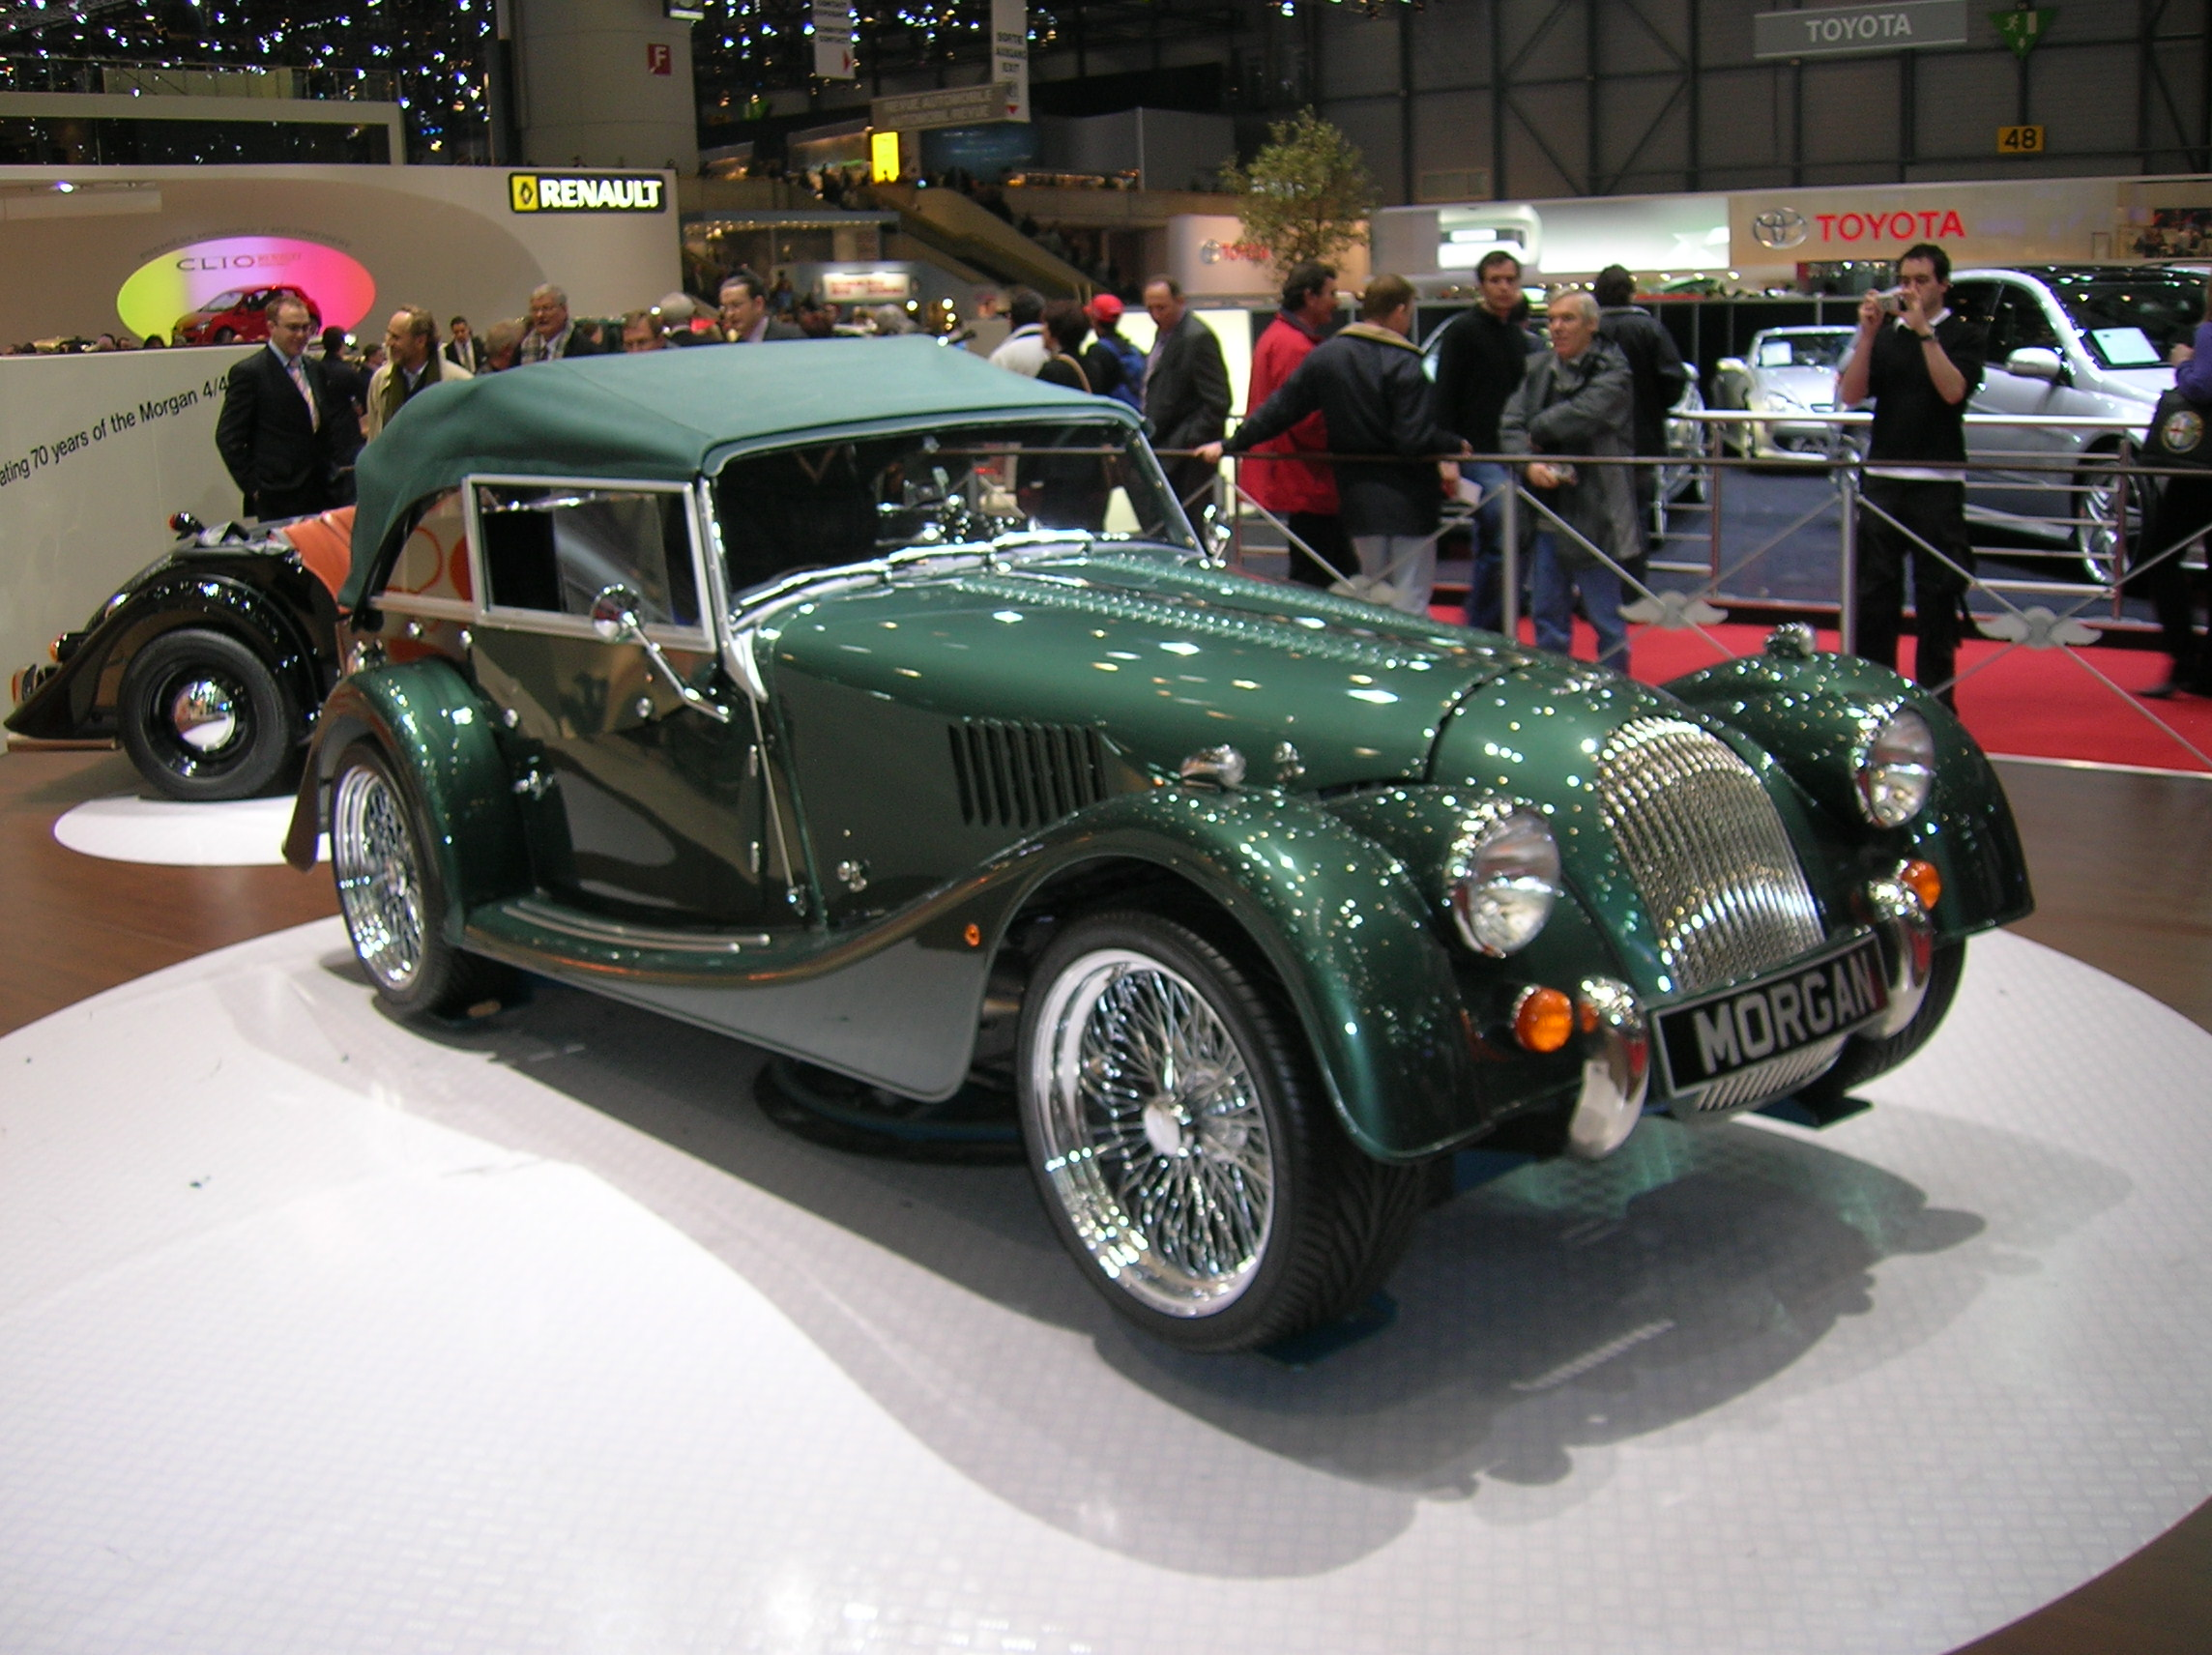 morgan images